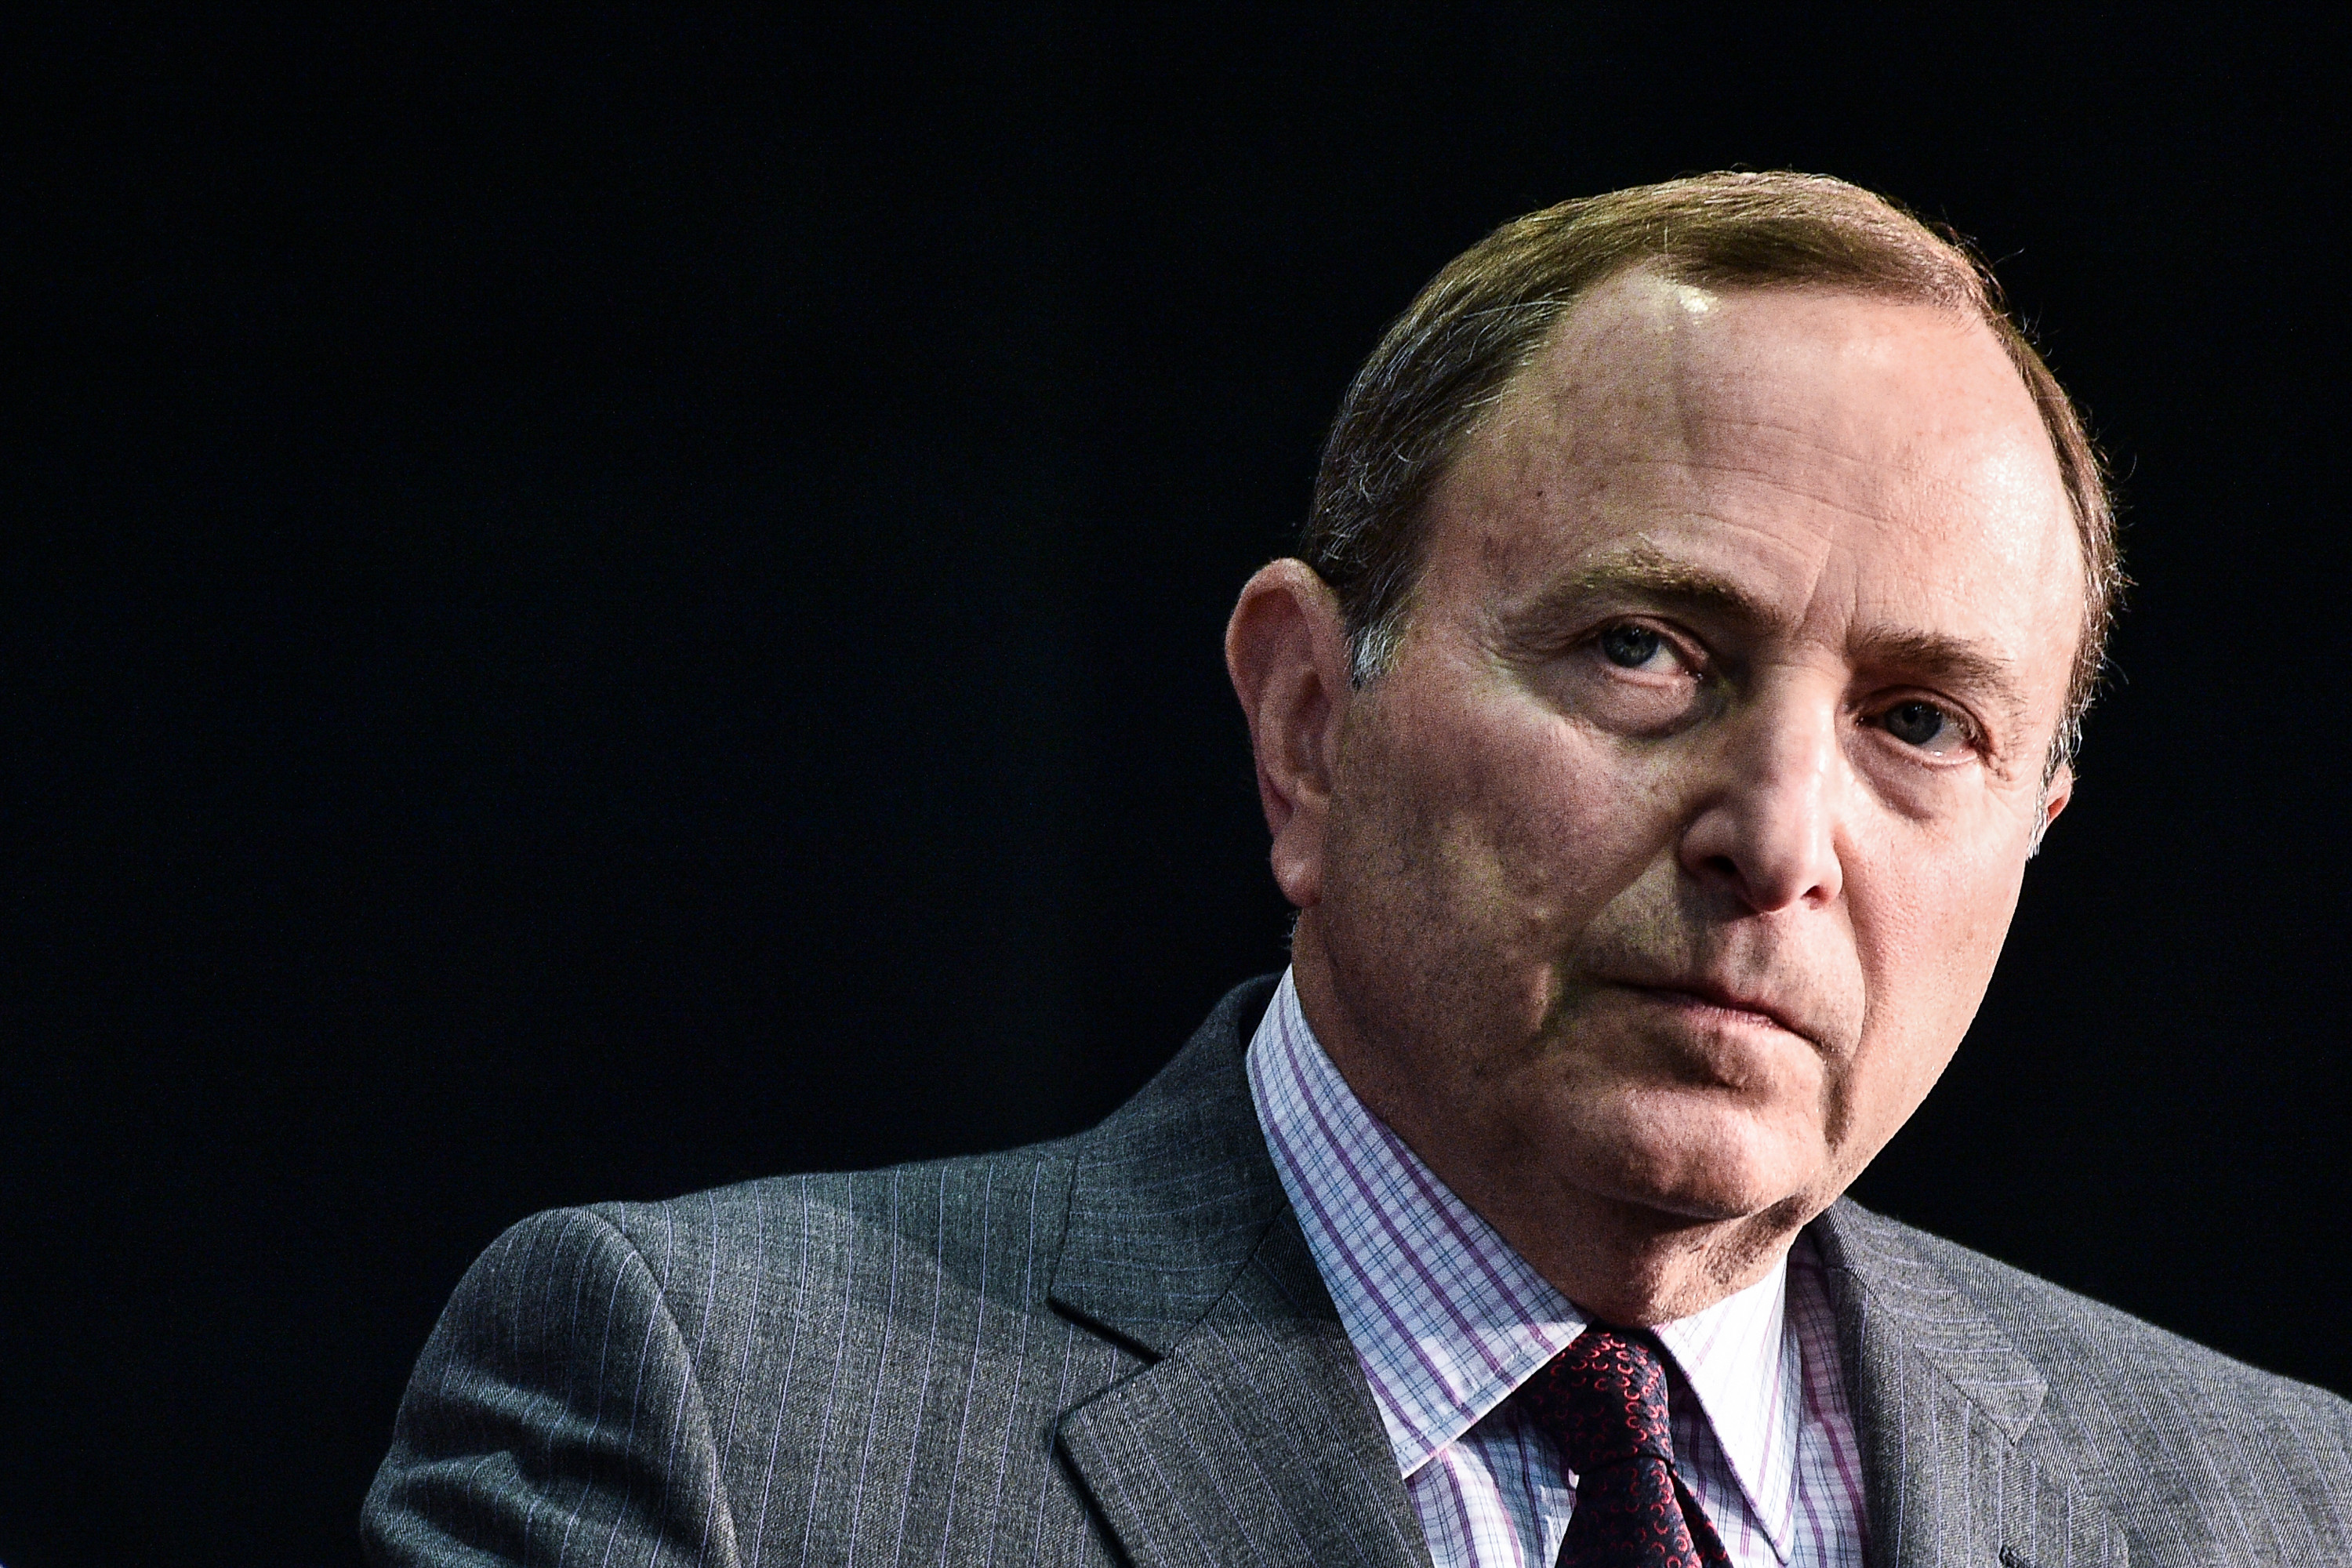 NHL Commissioner Gary Bettman and his legal team have 'contested every single issue' in a concussion lawsuit, an attorney for retired players says. (Getty Images)